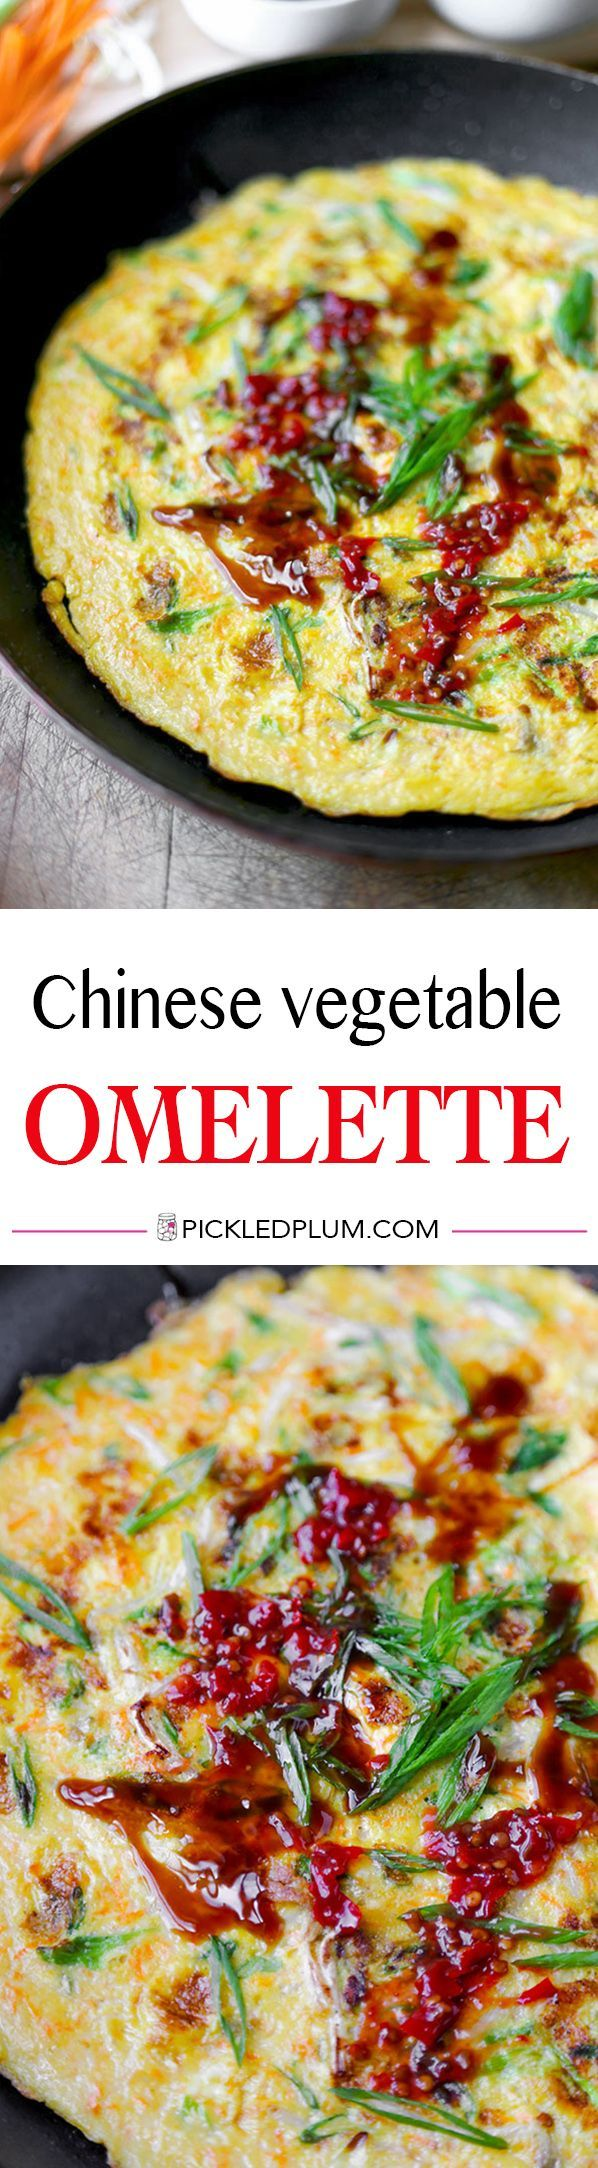 Chinese Vegetable Omelette - A simple Chinese vegetable omelette with Maggi seasoning and topped with oyster sauce. This recipe is so yummy, it will become part of your weekly meal rotation! We love this for brunch! Easy, Quick Recipe | pickledplum.com